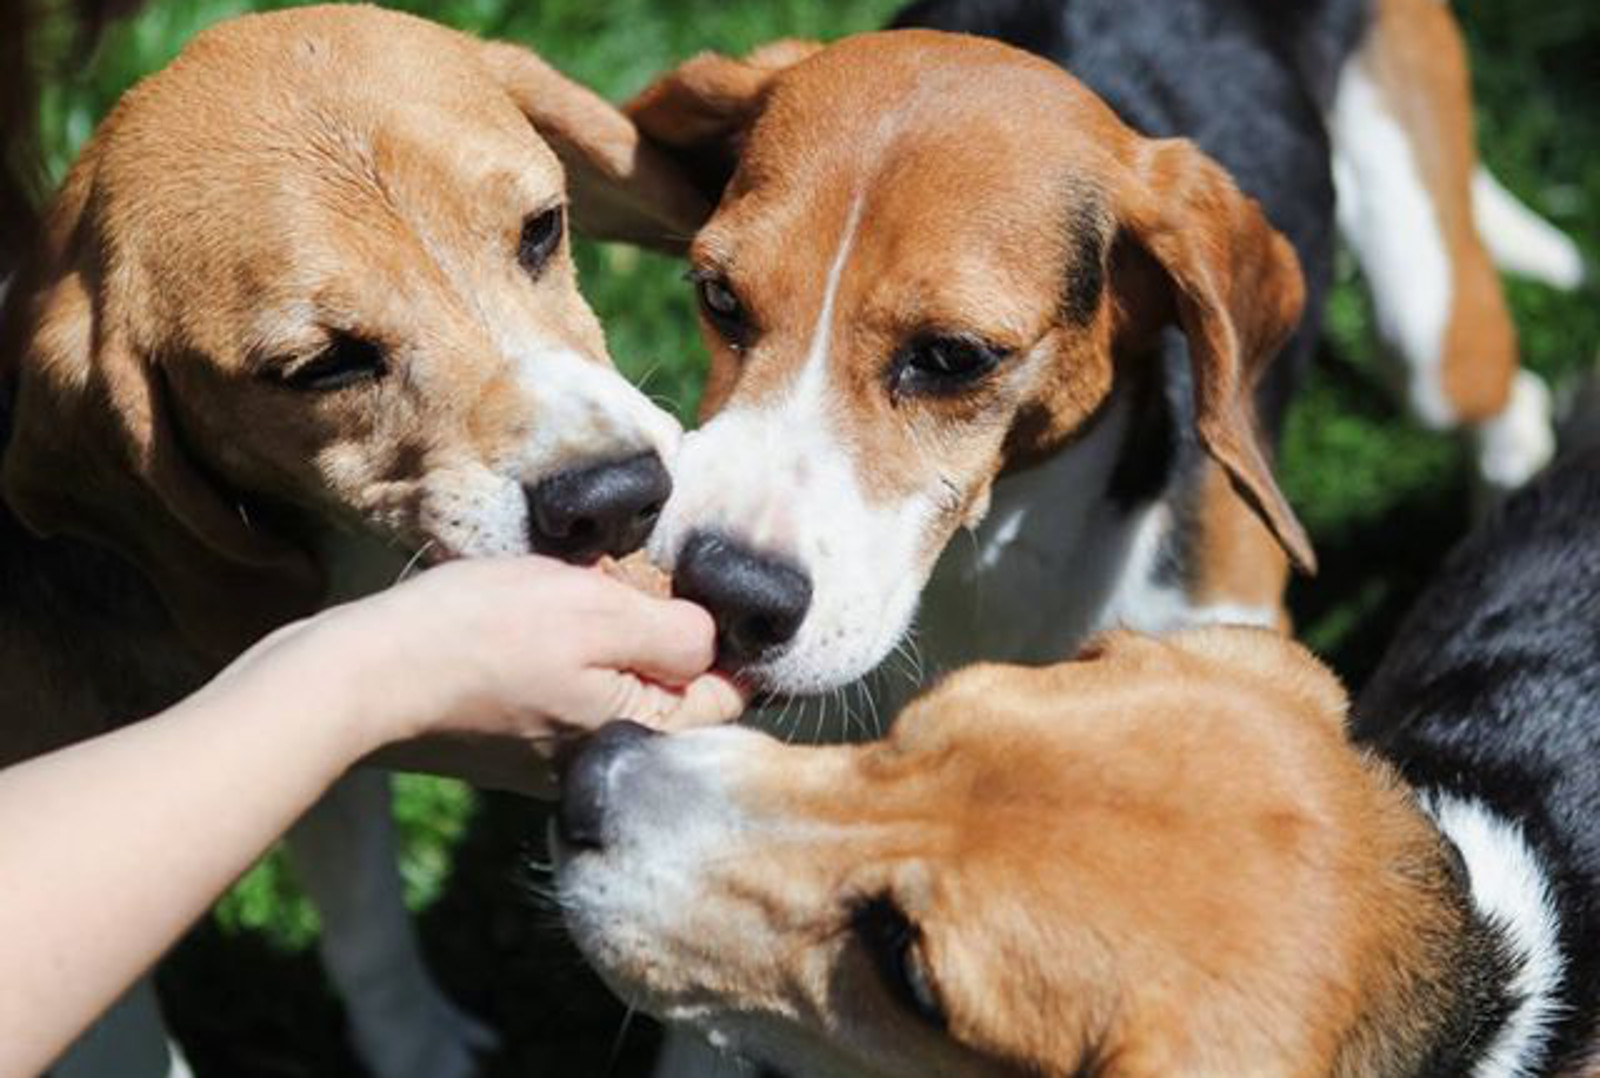 Beautiful Photo Captures the Moment Former Lab Beagles Taste Treats for the Very First Time!